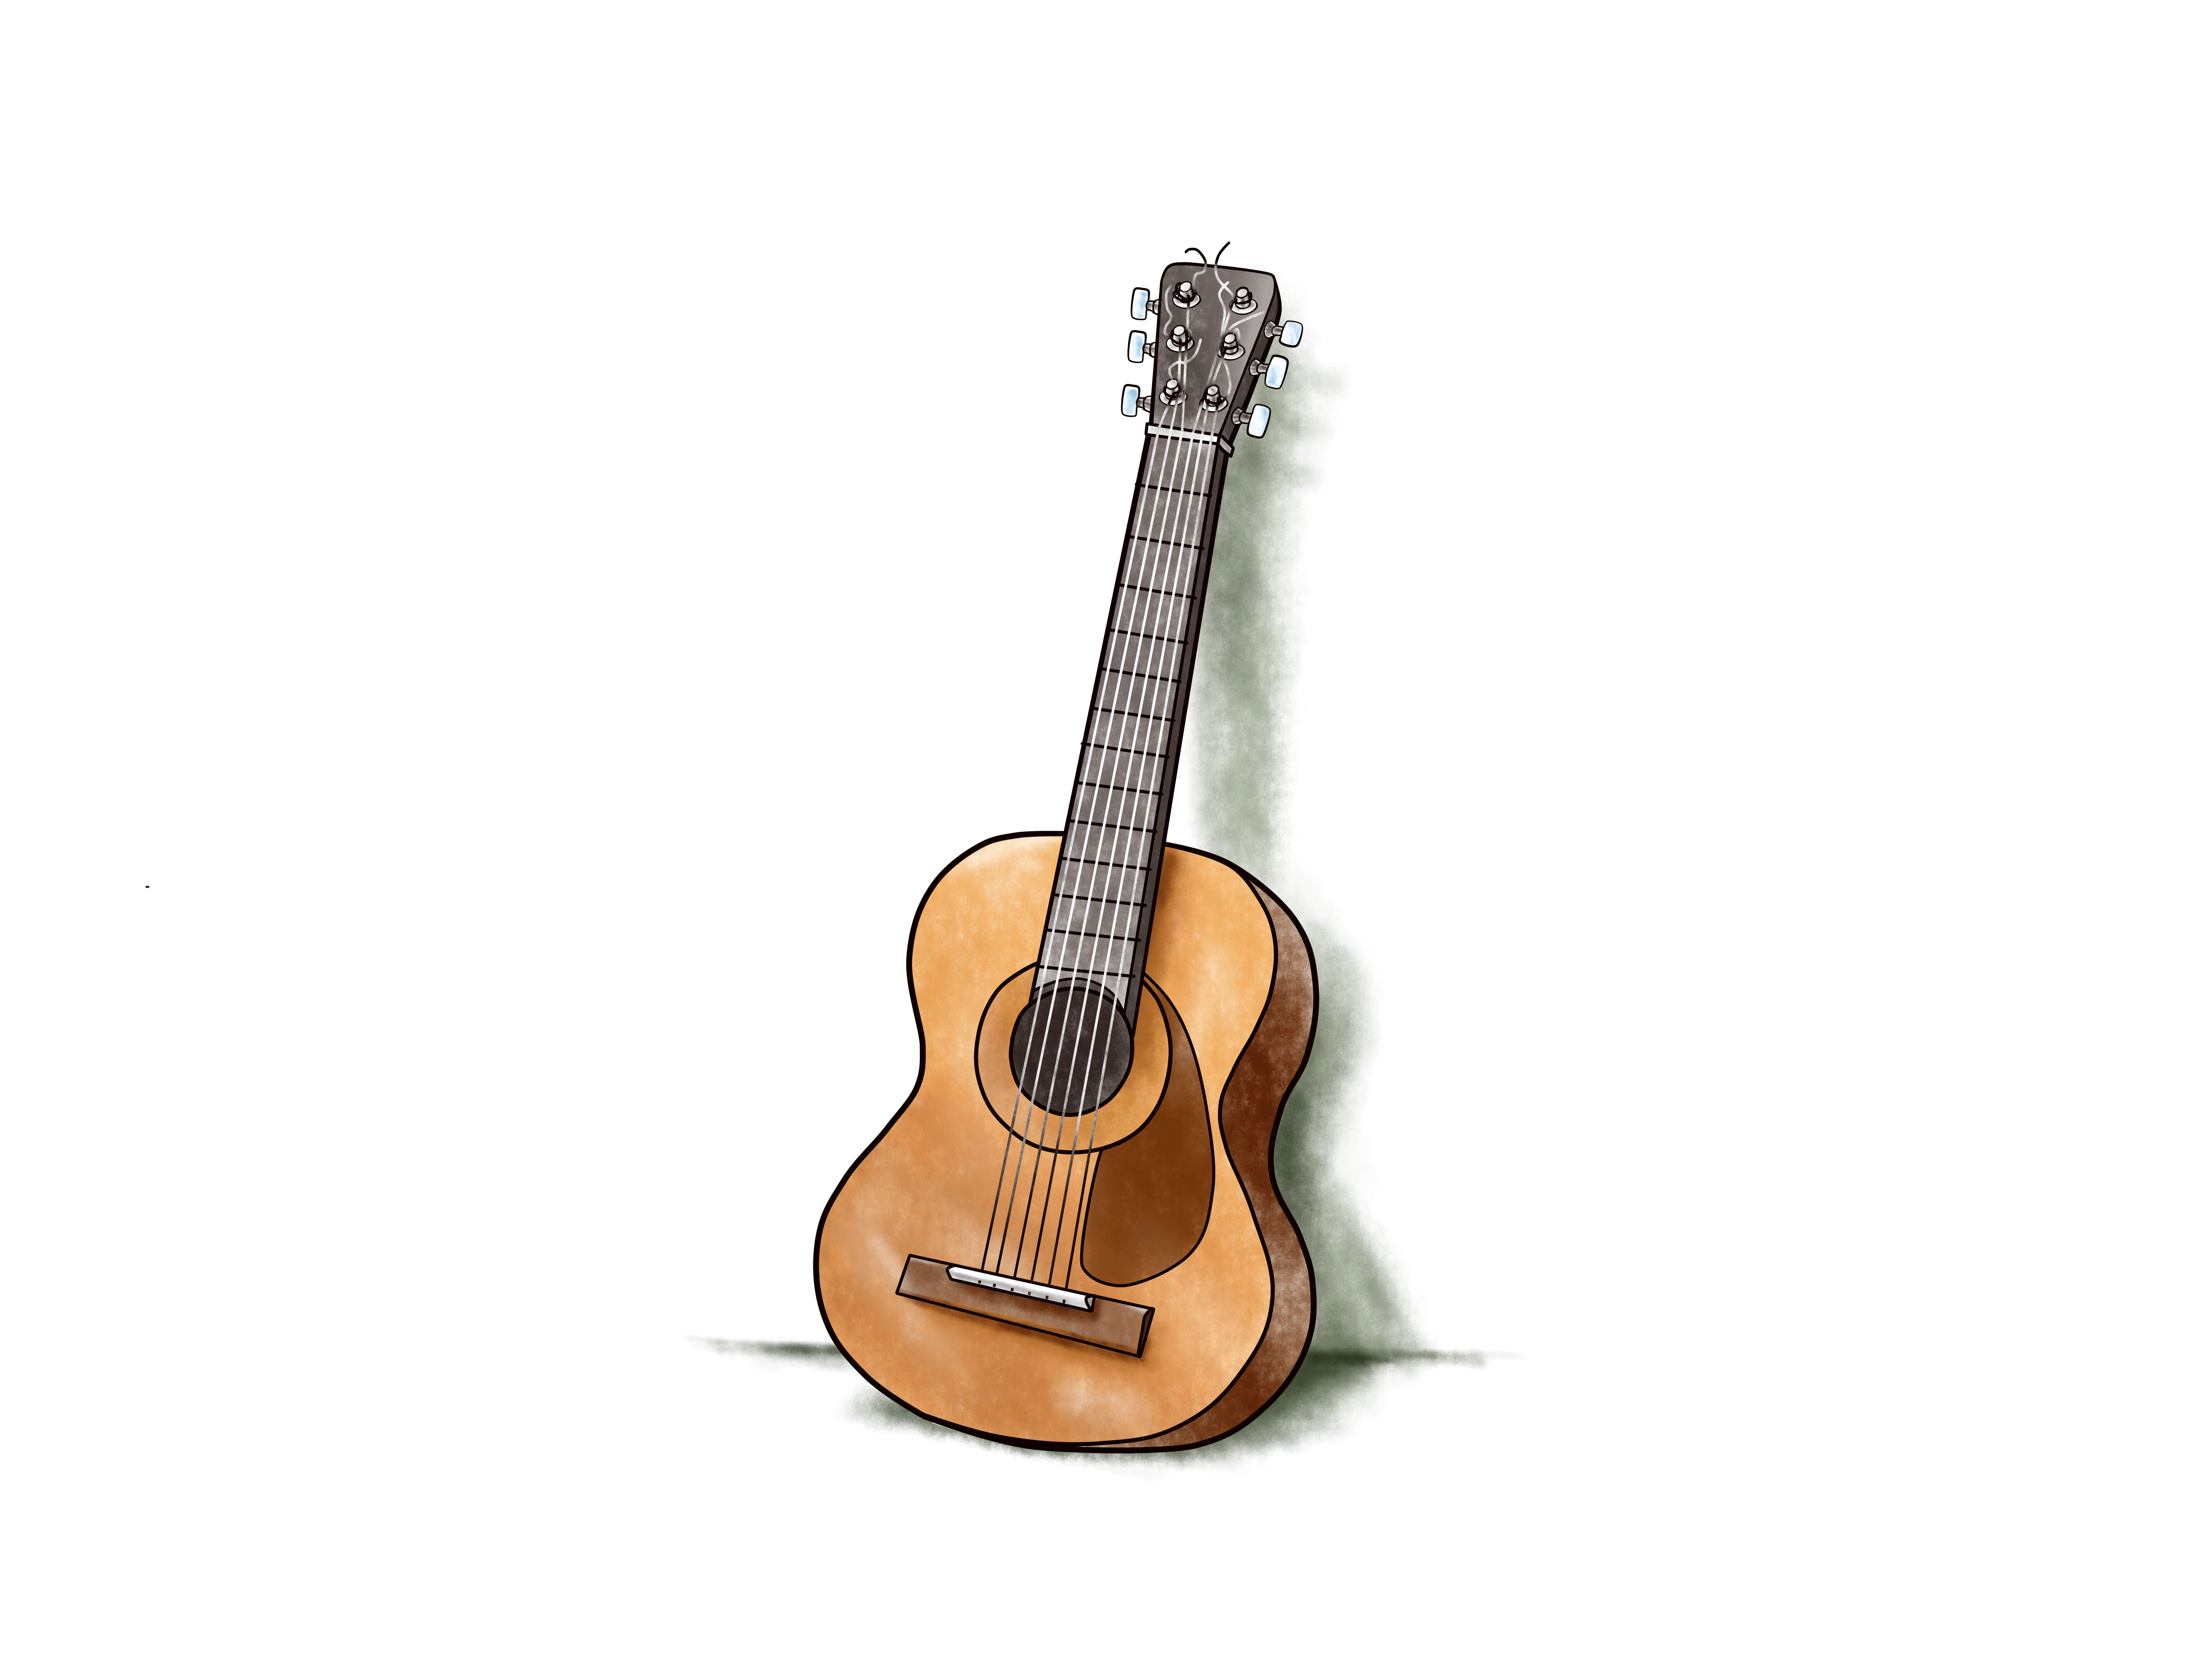 Learning guitar with learning science